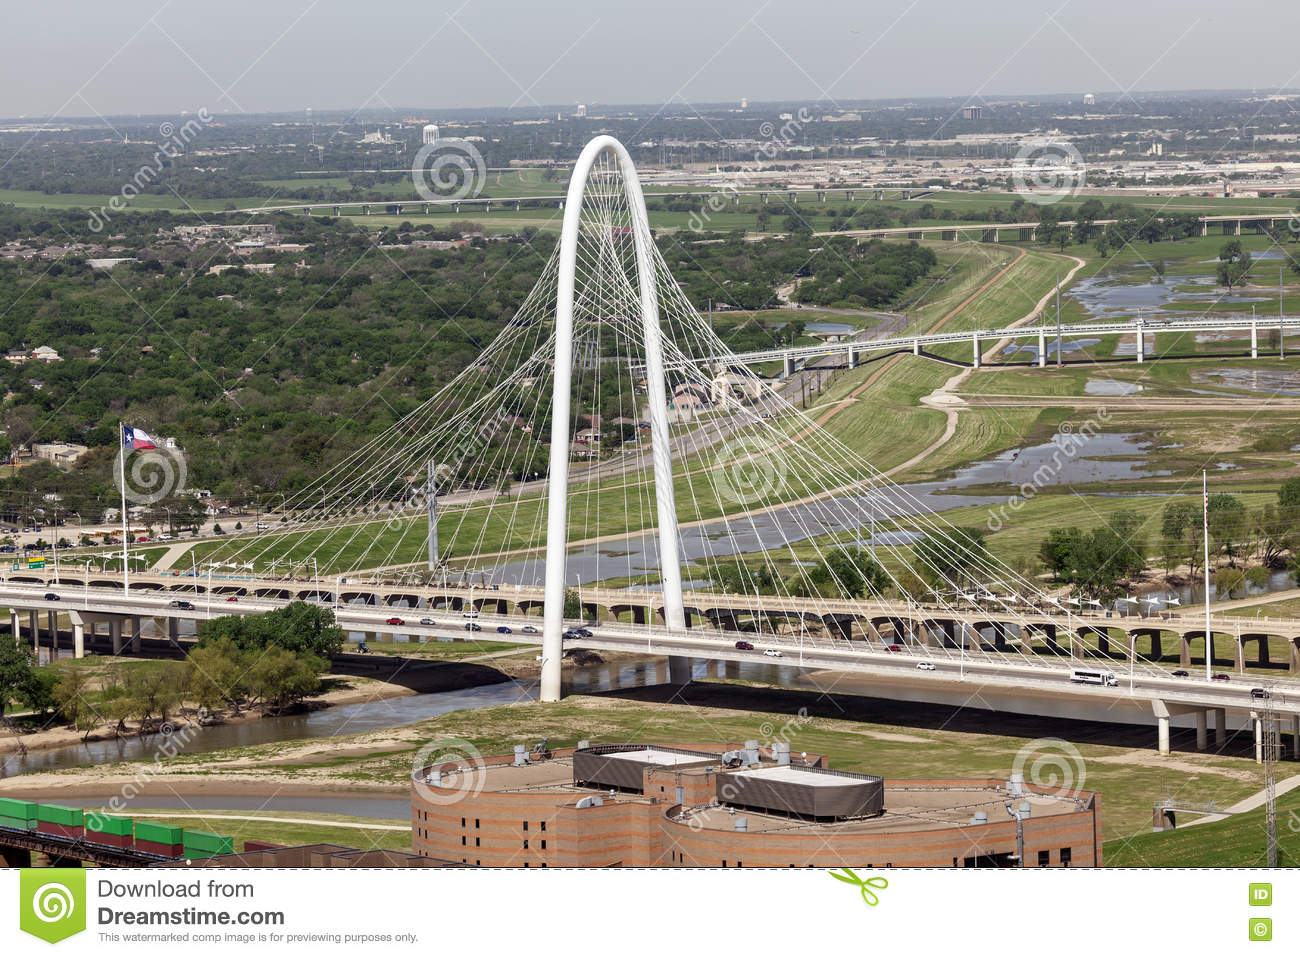 Margaret Hunt Bridge à Dallas, Etats-Unis